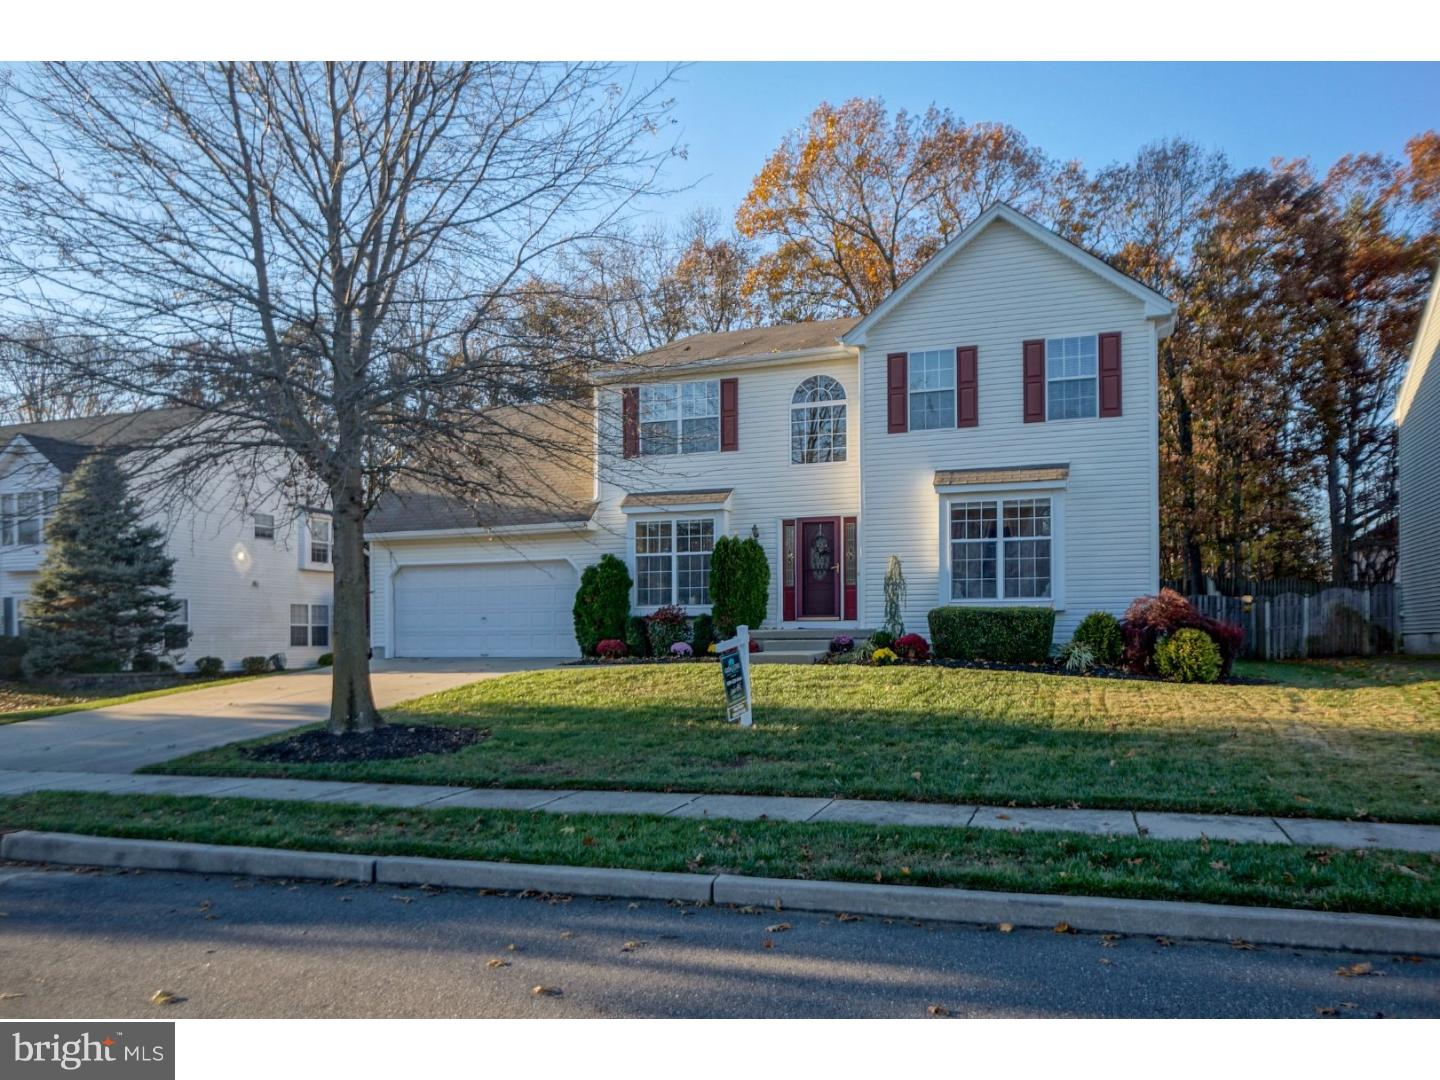 Single Family Home for Sale at 23 MORNINGSTAR Court Gloucester, New Jersey 08081 United States